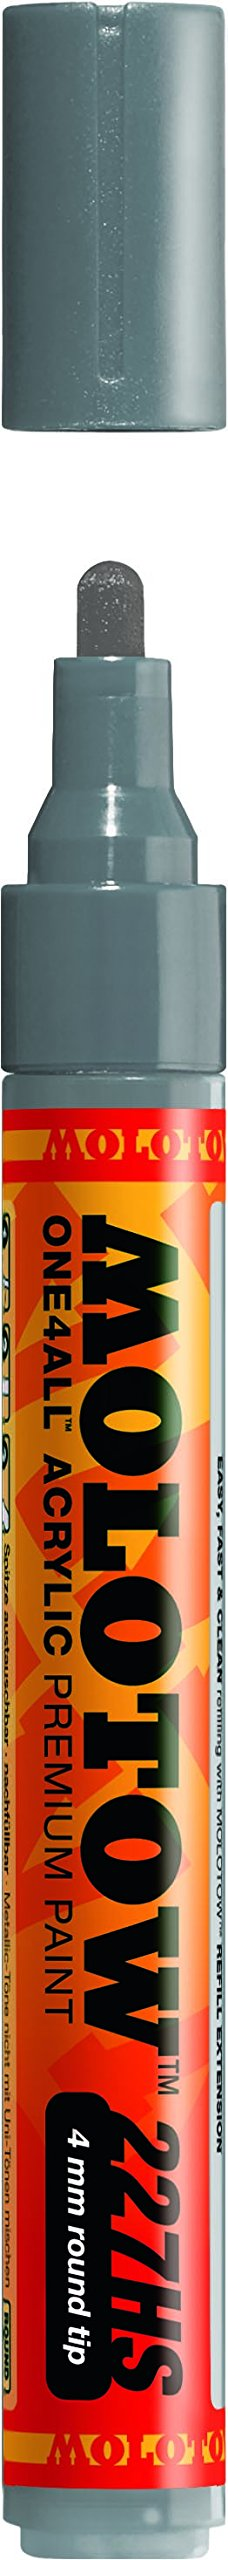 Molotow ONE4ALL Acrylic Paint Marker, 4mm, Grey Blue Dark, 1 Each (227.244) (Color: Gray Blue Dark, Tamaño: Paint Marker - 4mm)